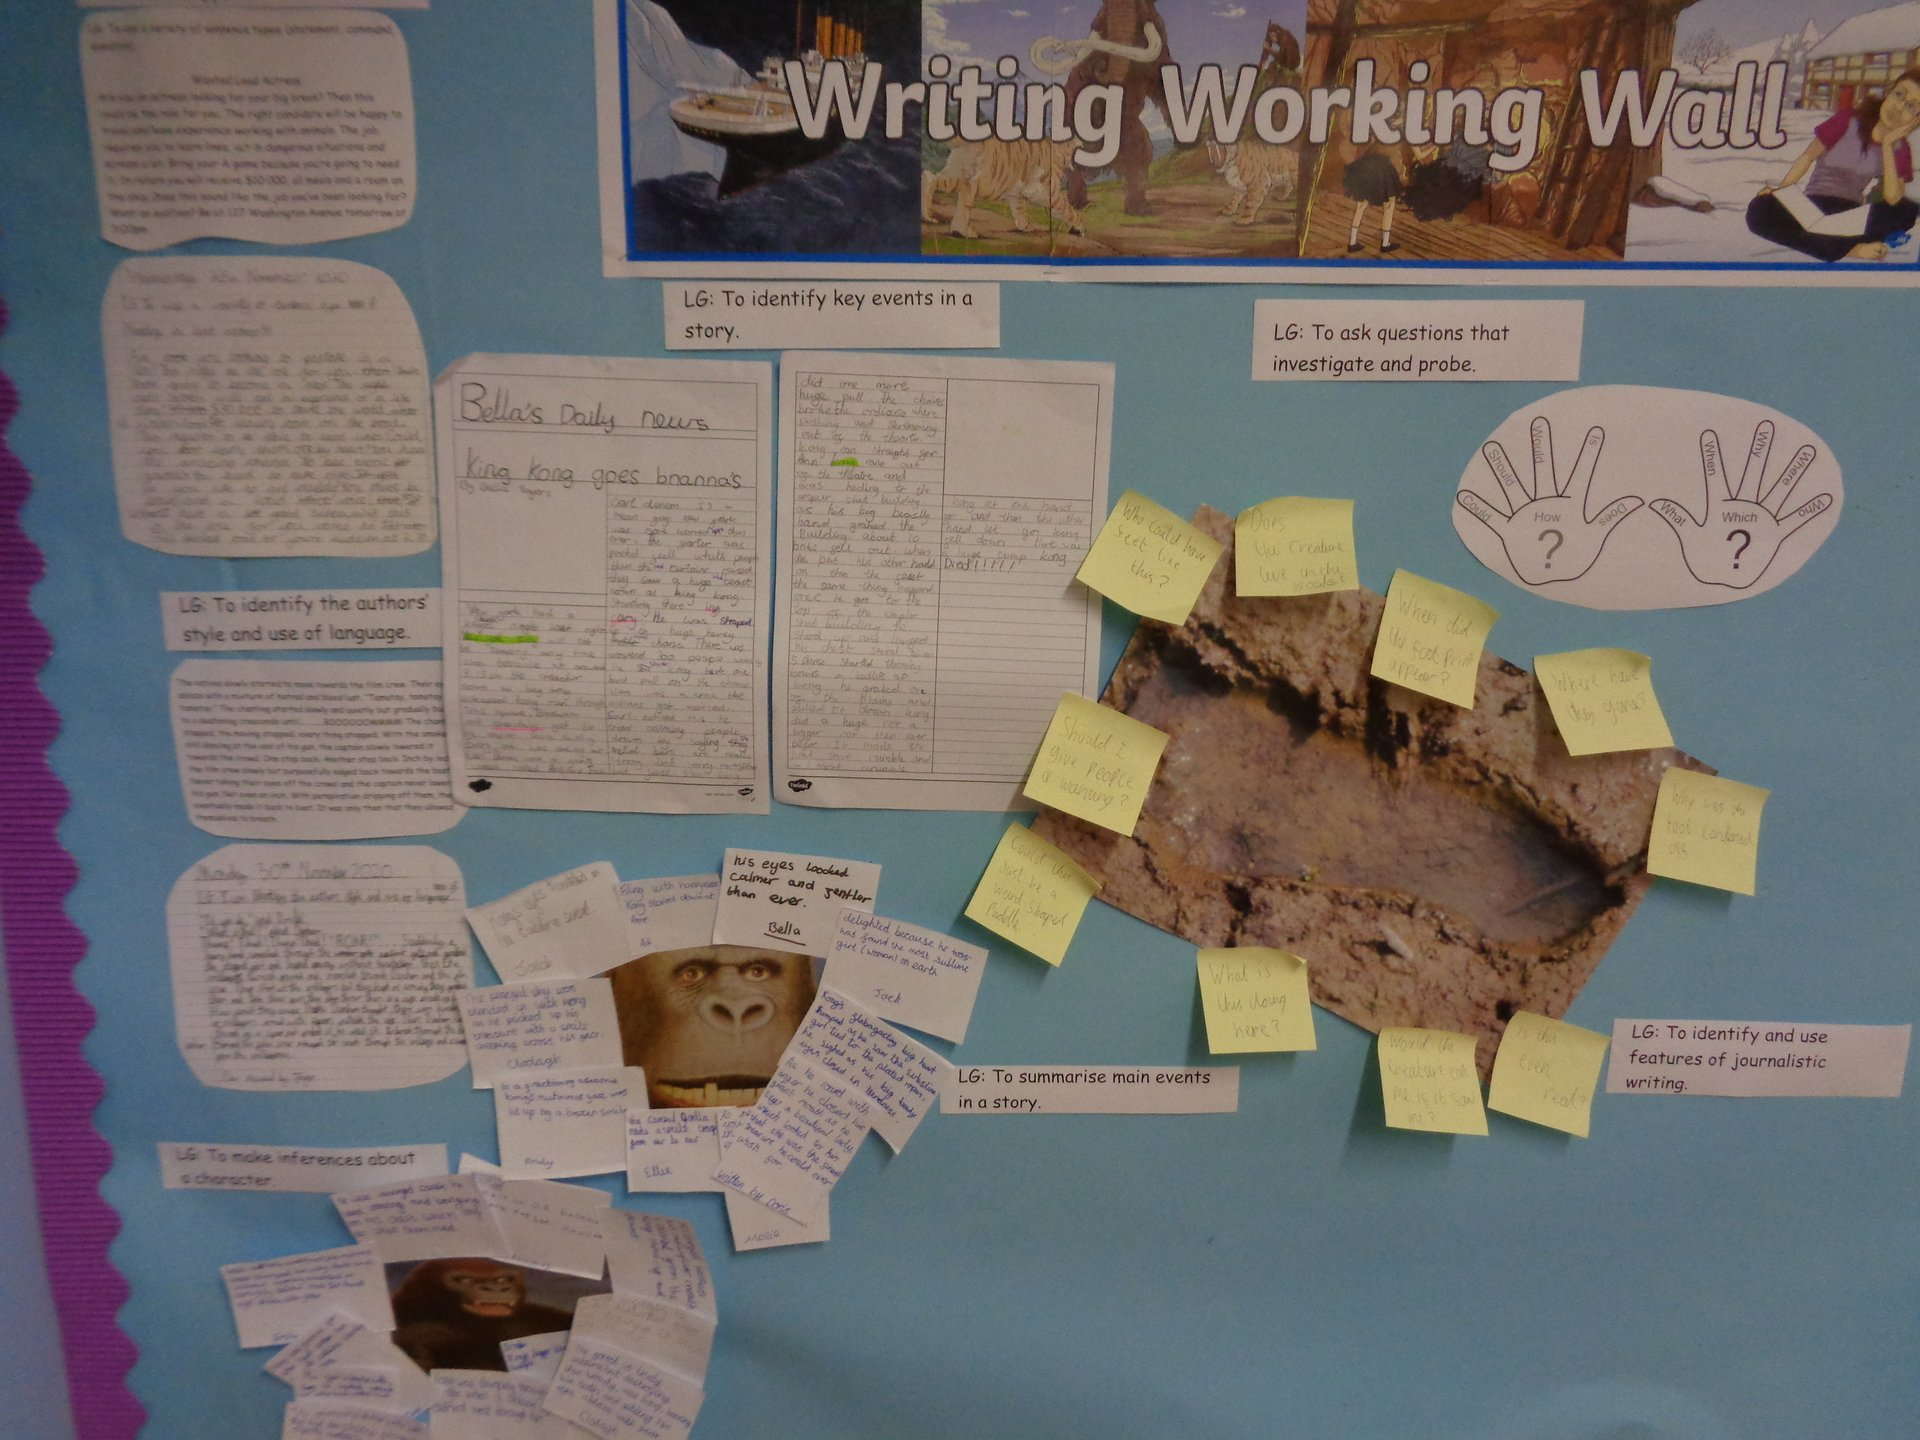 Our working wall